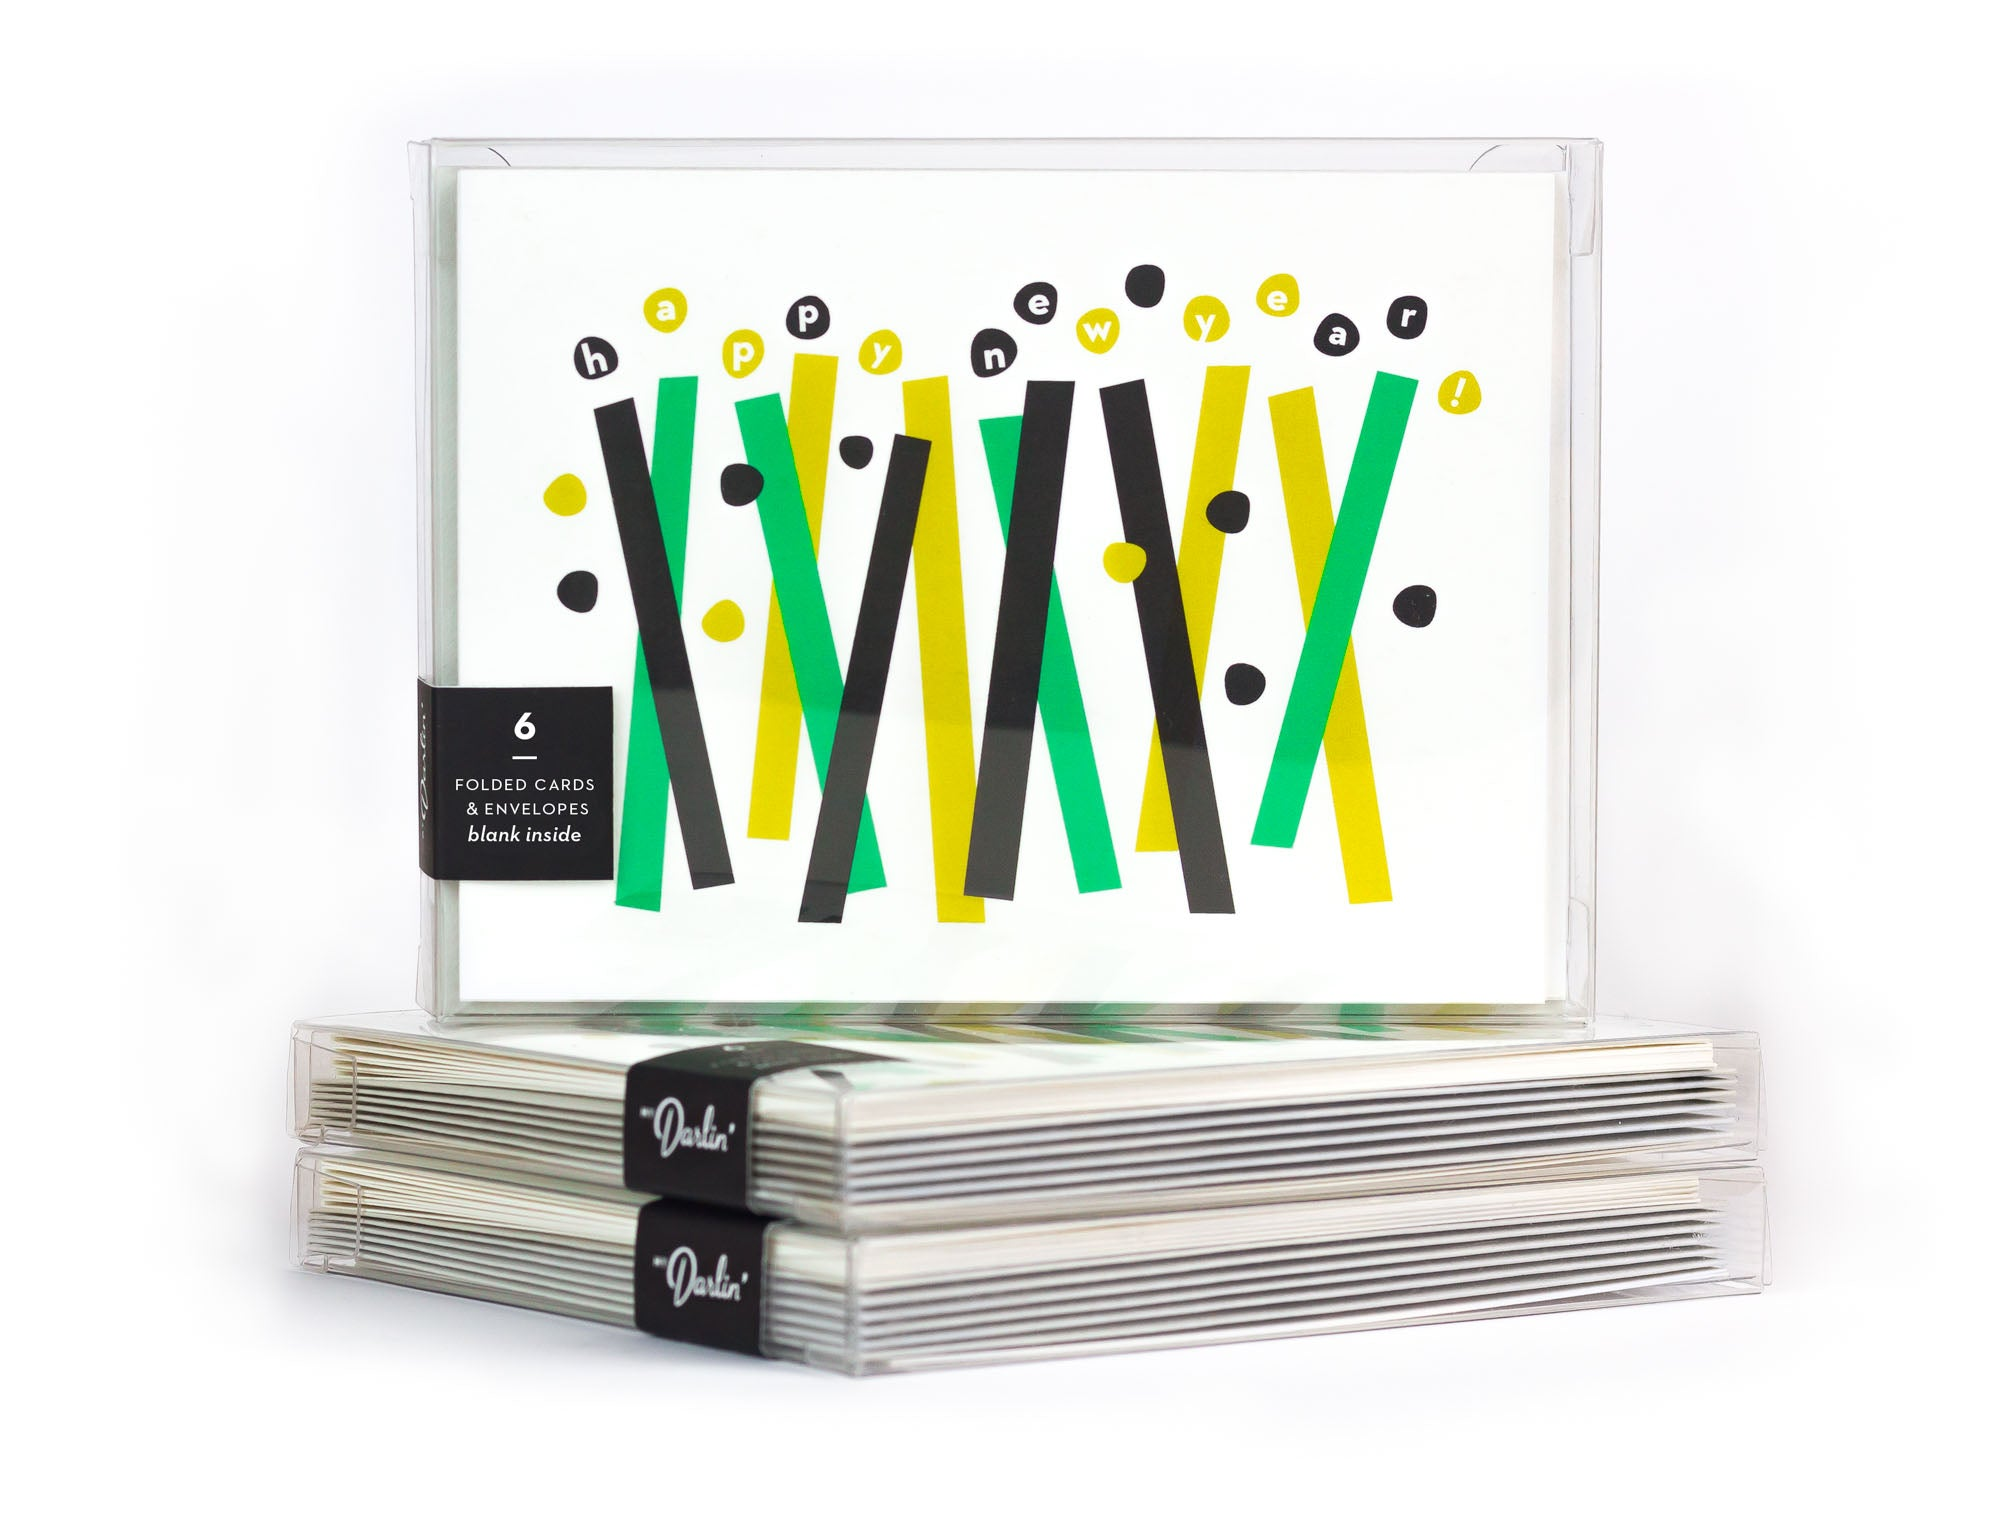 Happy New Year abstract confetti new year greeting card boxed set. Made in USA by My Darlin' @mydarlin_bk